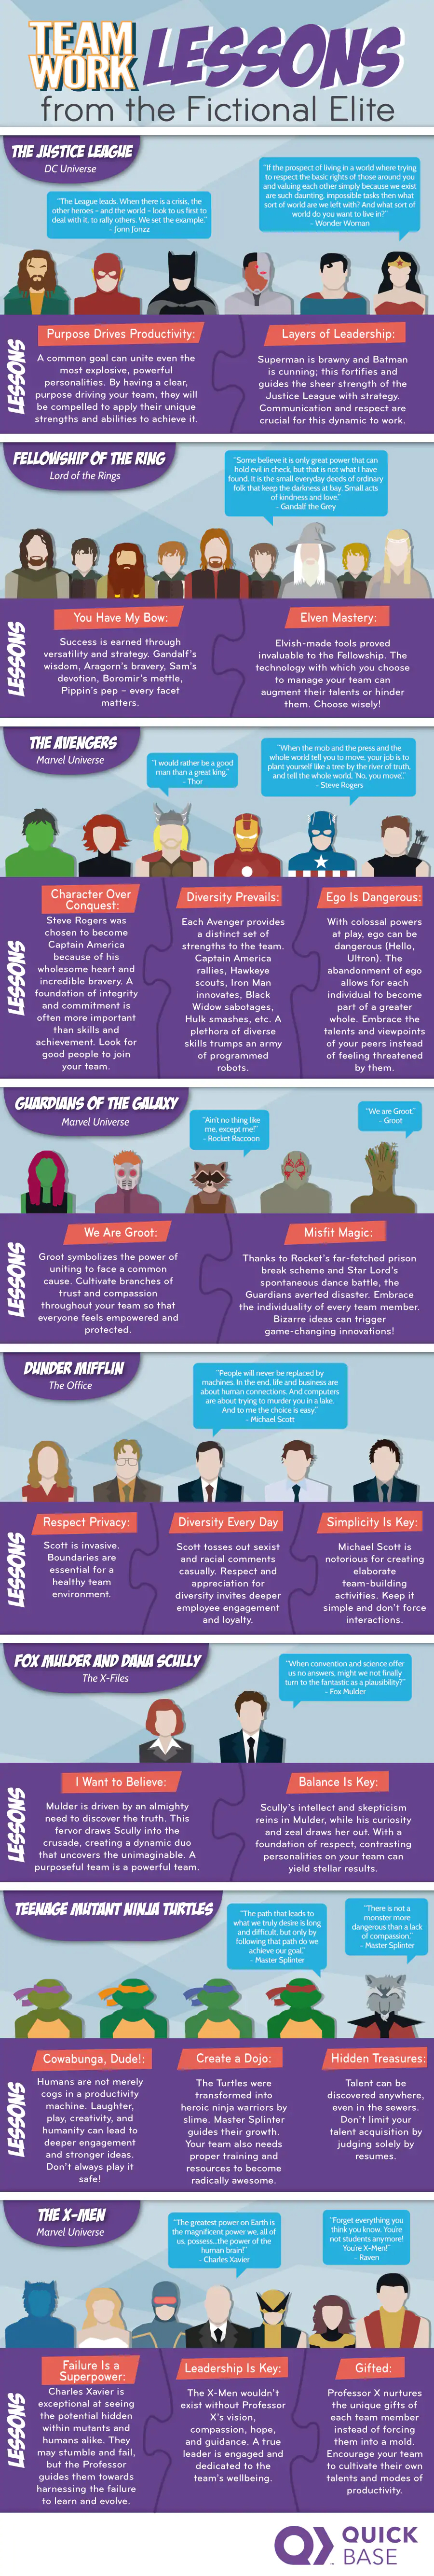 Teamwork is the Ultimate Power: Lessons Learned from Fictional Super-Heroes - Infographic